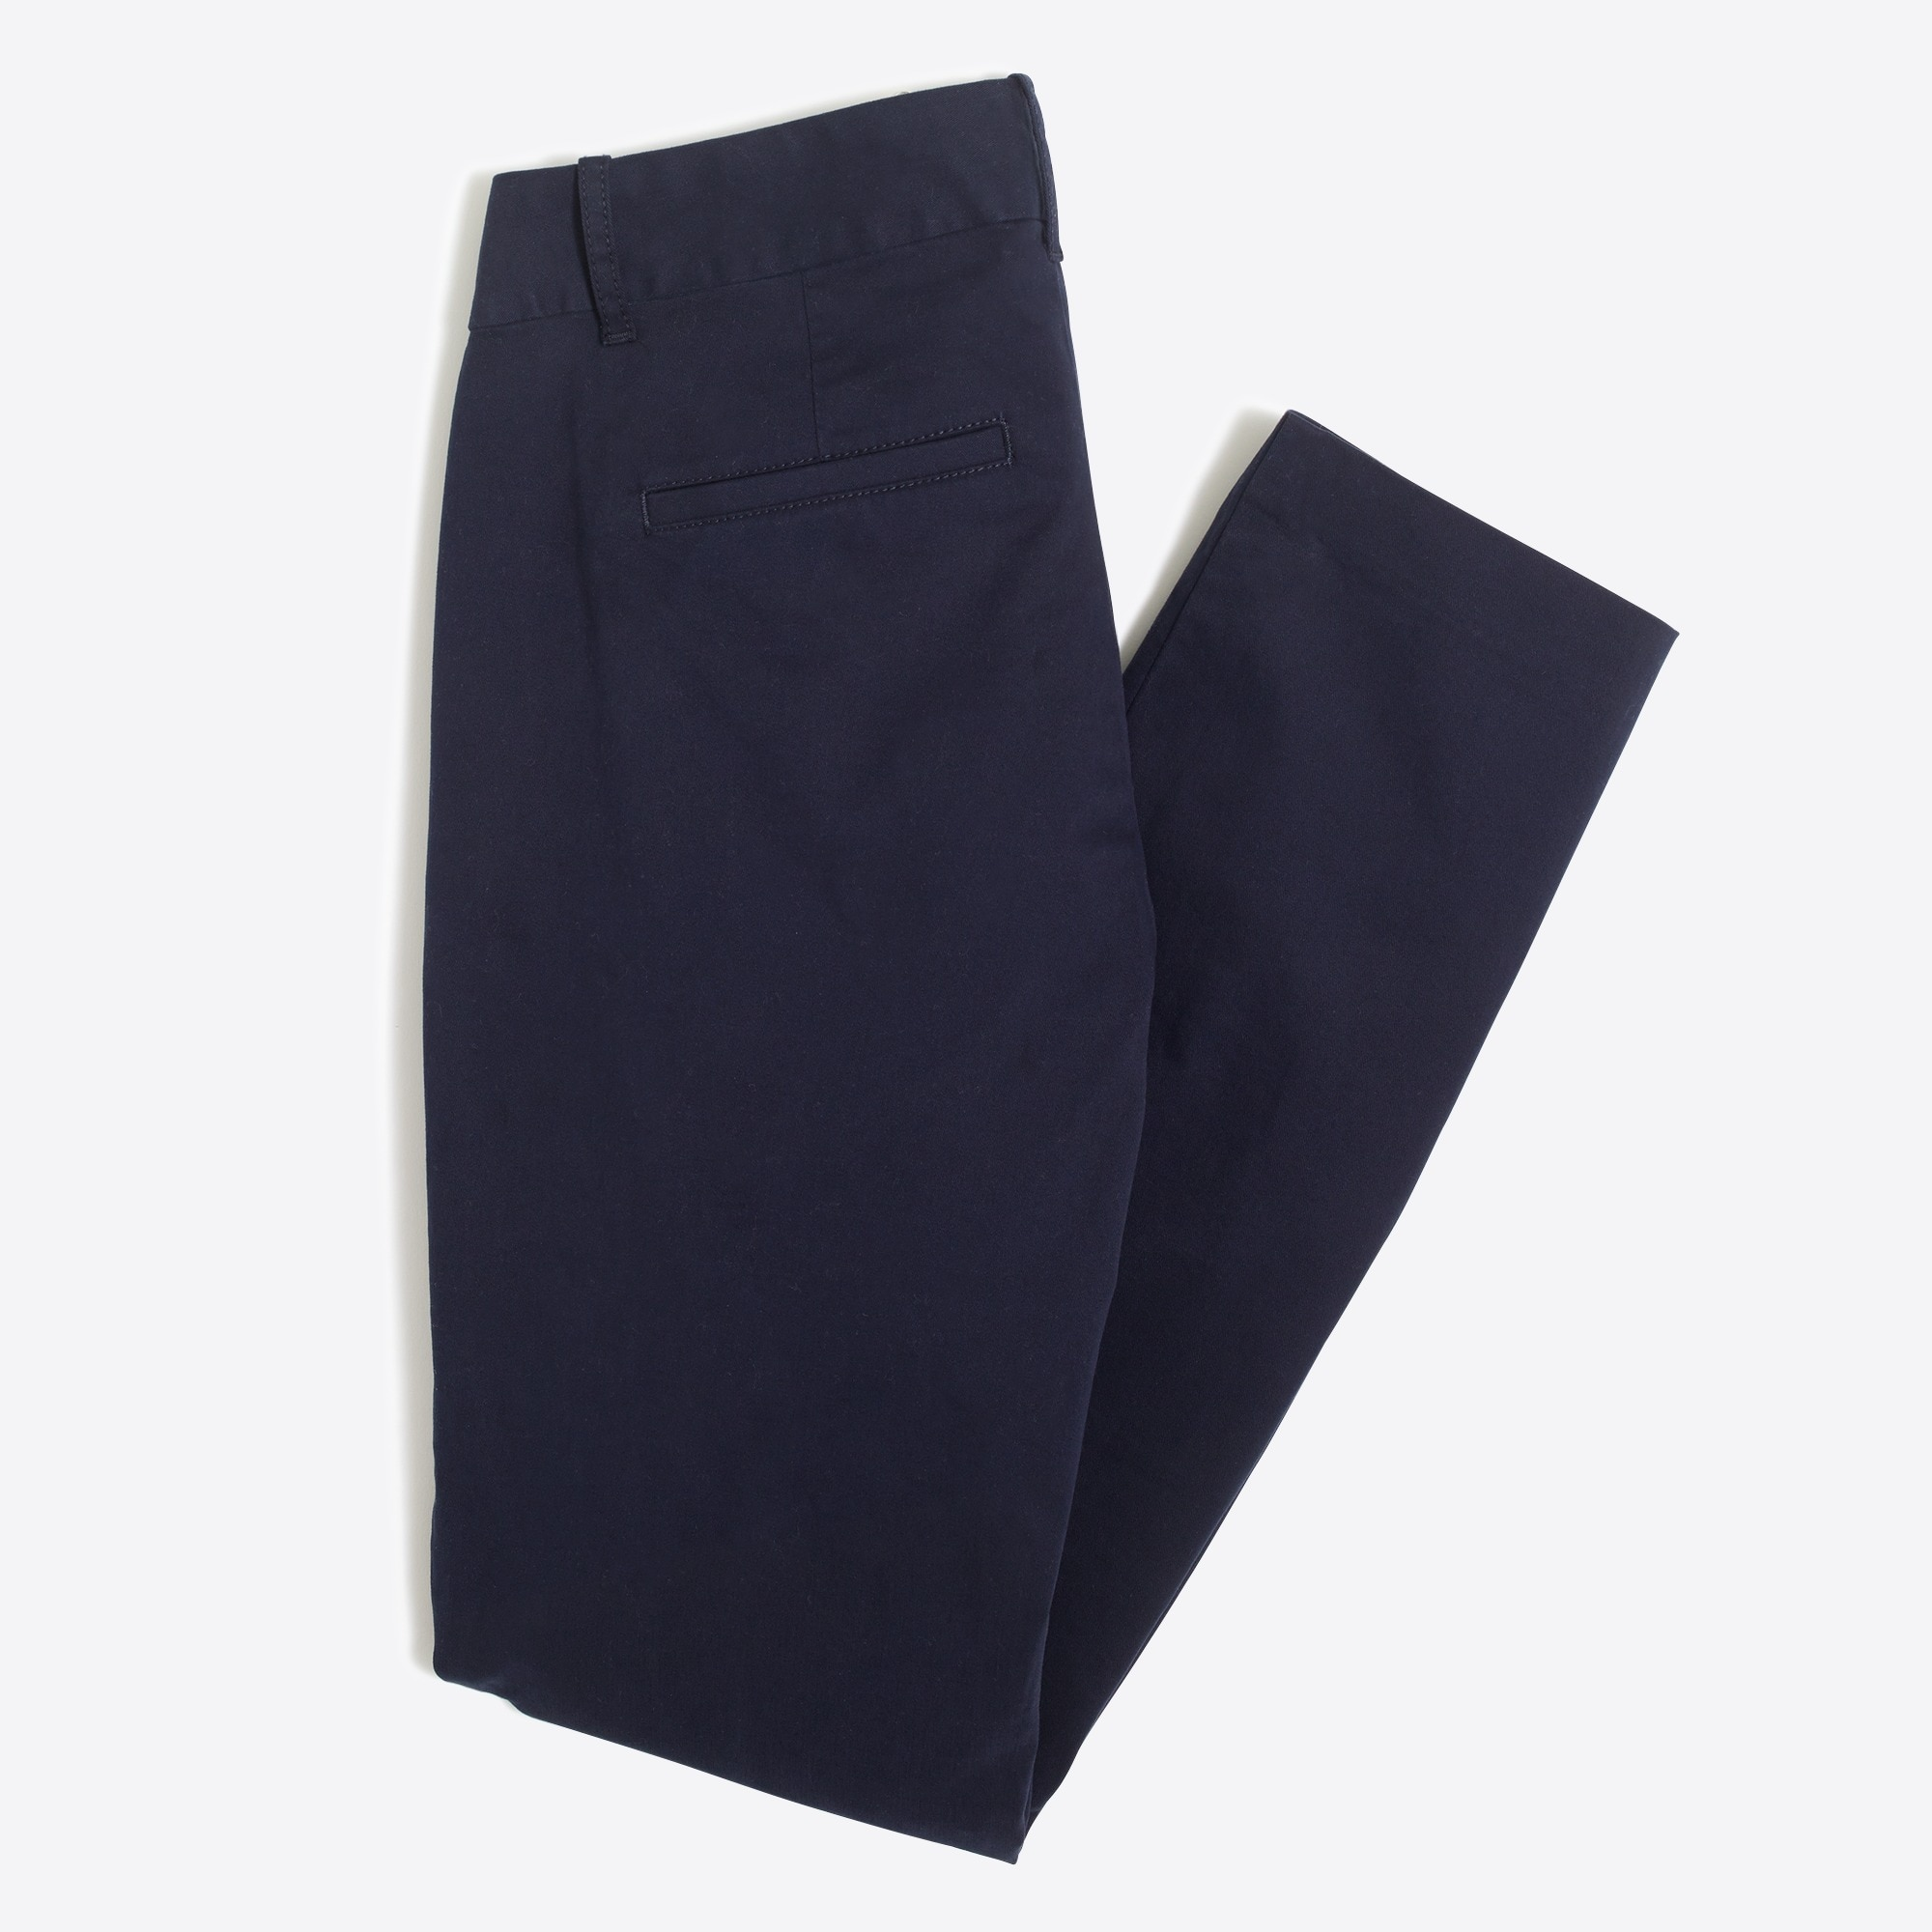 Image 3 for Petite laney chino pant